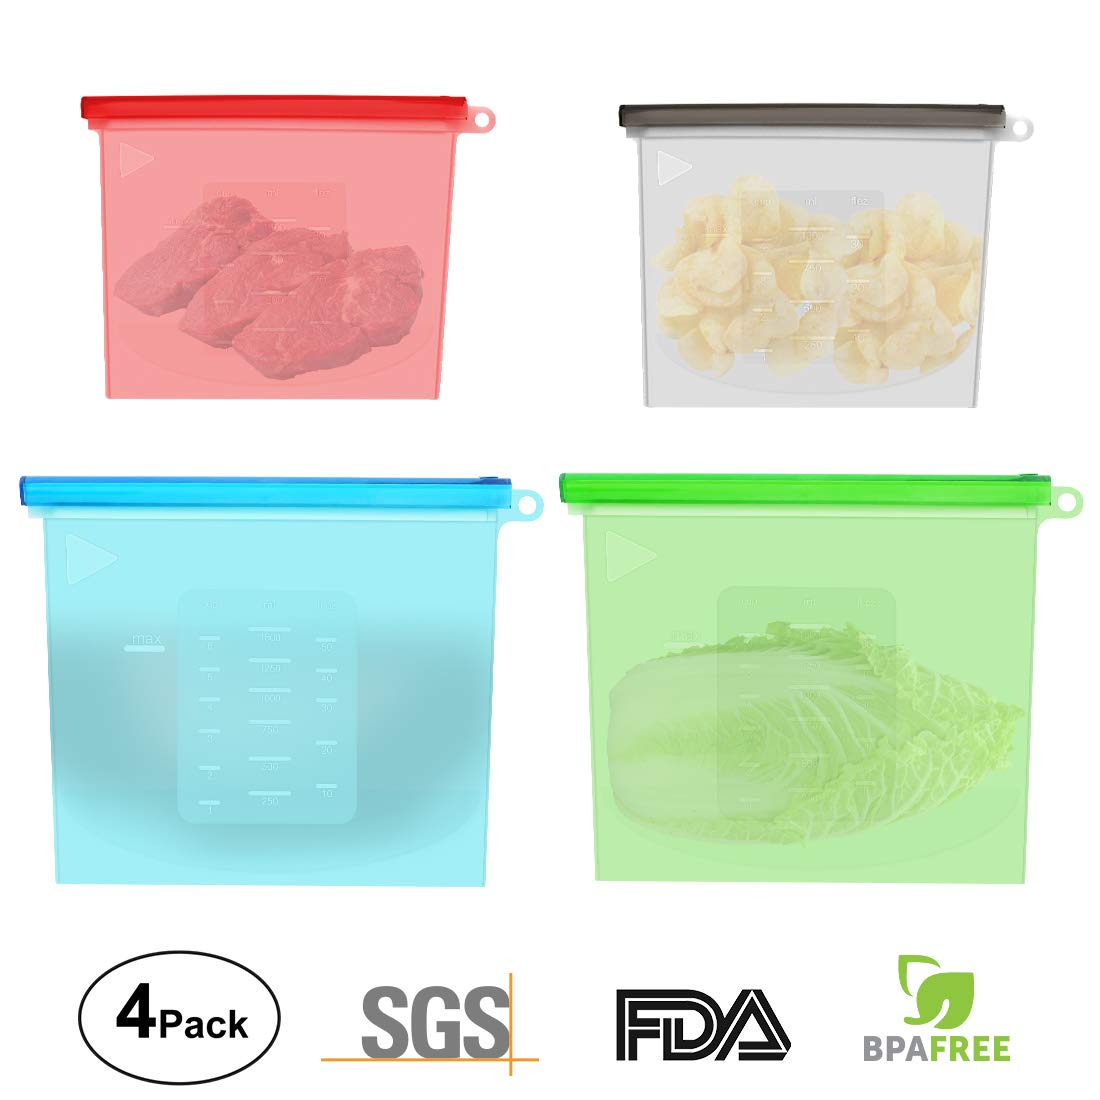 4 Packs Reusable Silicone Food Storage Preservation Bags,Eco Friendly and BPA Free,Ideal for Food Storage, Heating, Steaming, Cooking, Freezing, Sous Vide-2 Small & 2 Large